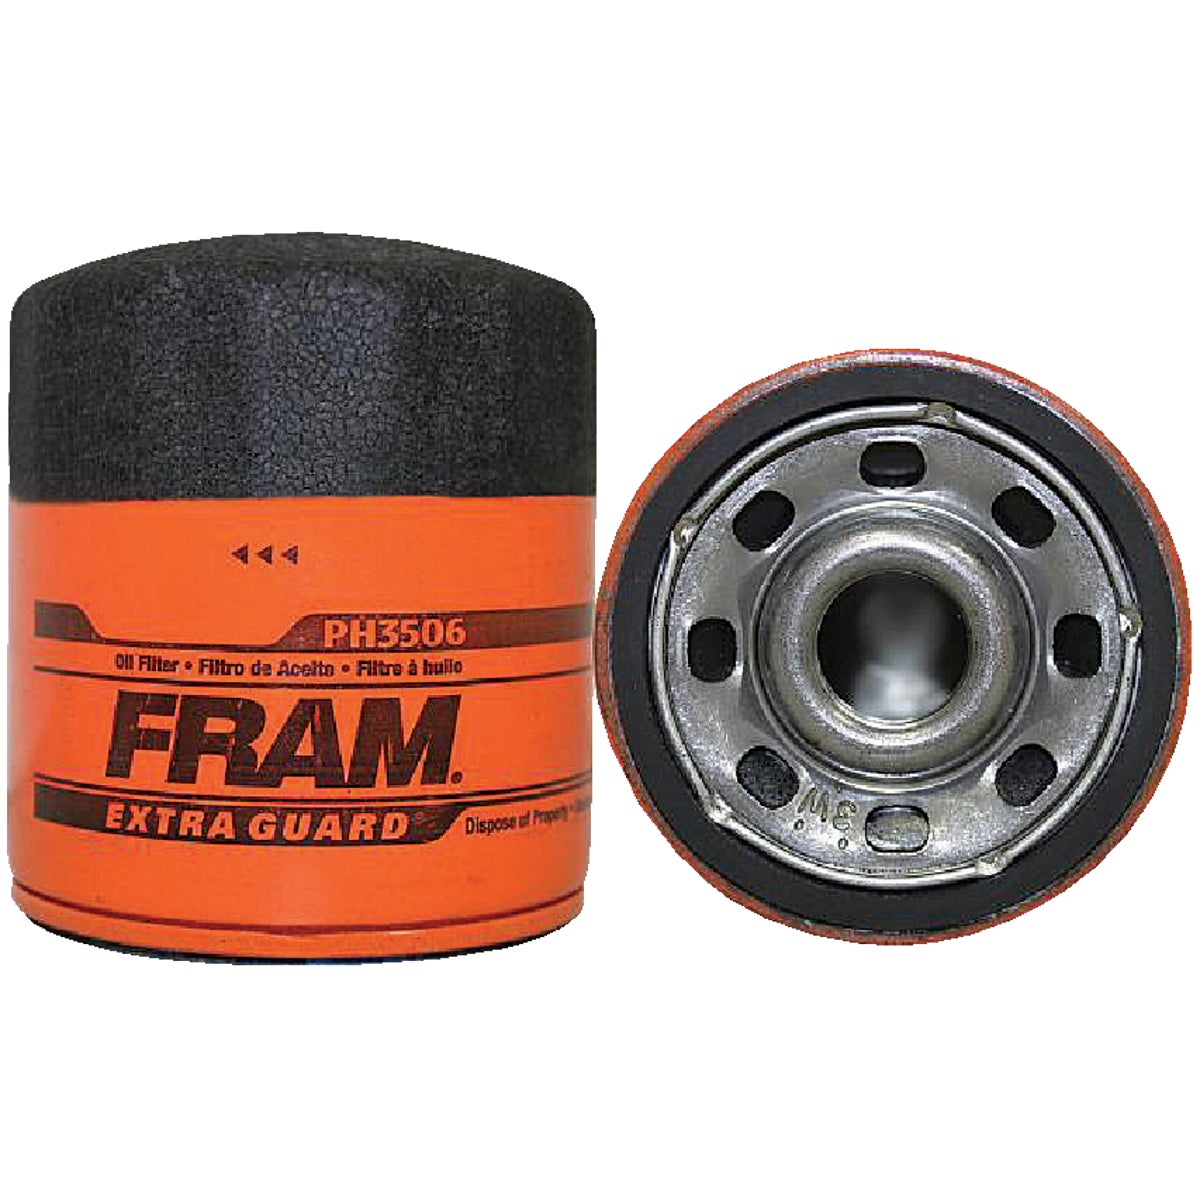 FRAM ALL-PURP OIL FILTER - PH3506 by Fram Group